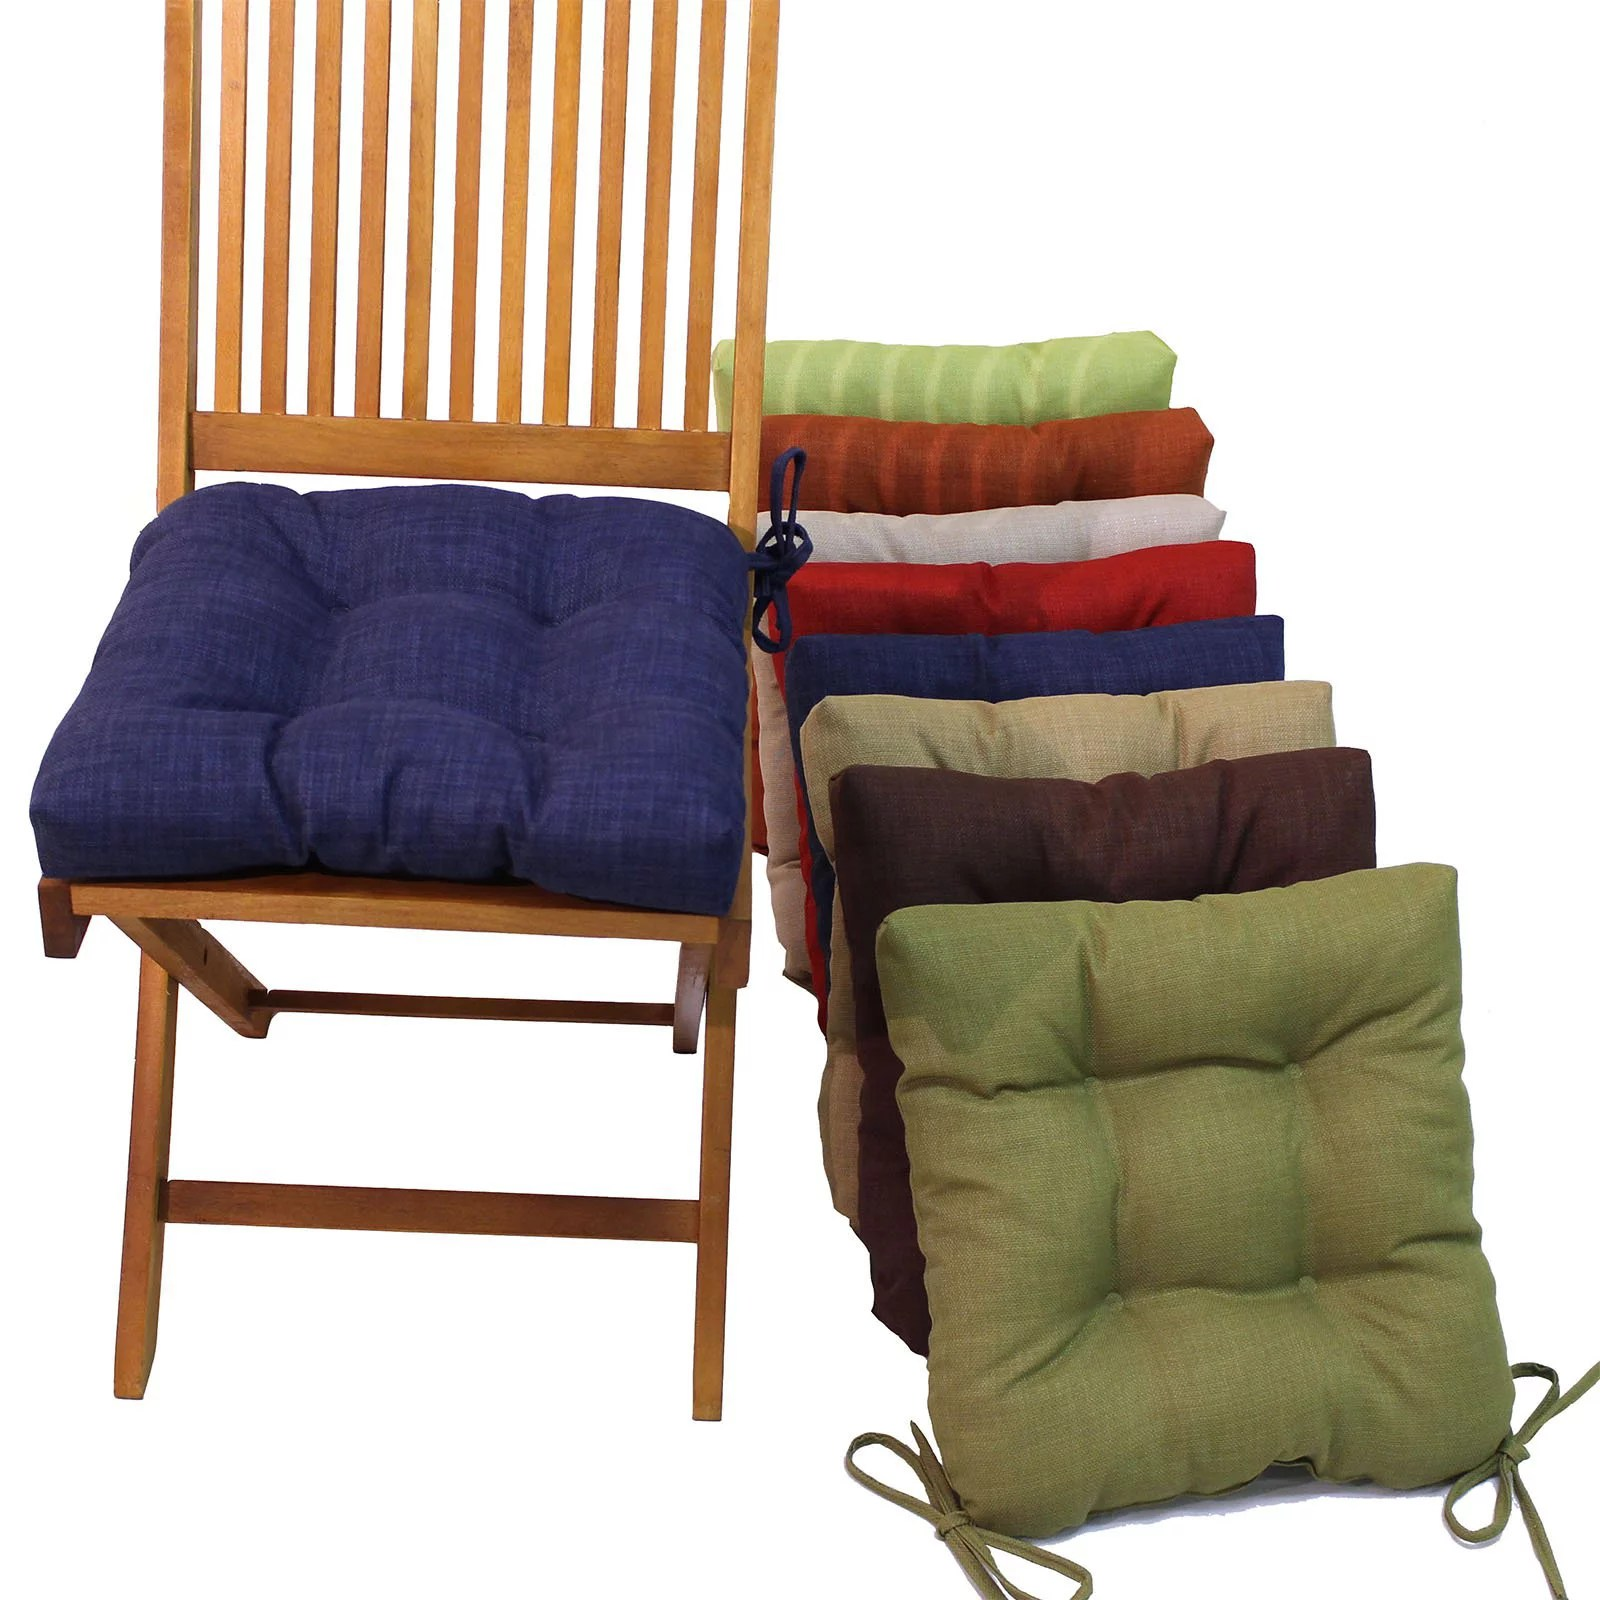 wicker chair cushions with ties barber hydraulic pump blazing needles 16 in square outdoor set of 4 walmart com